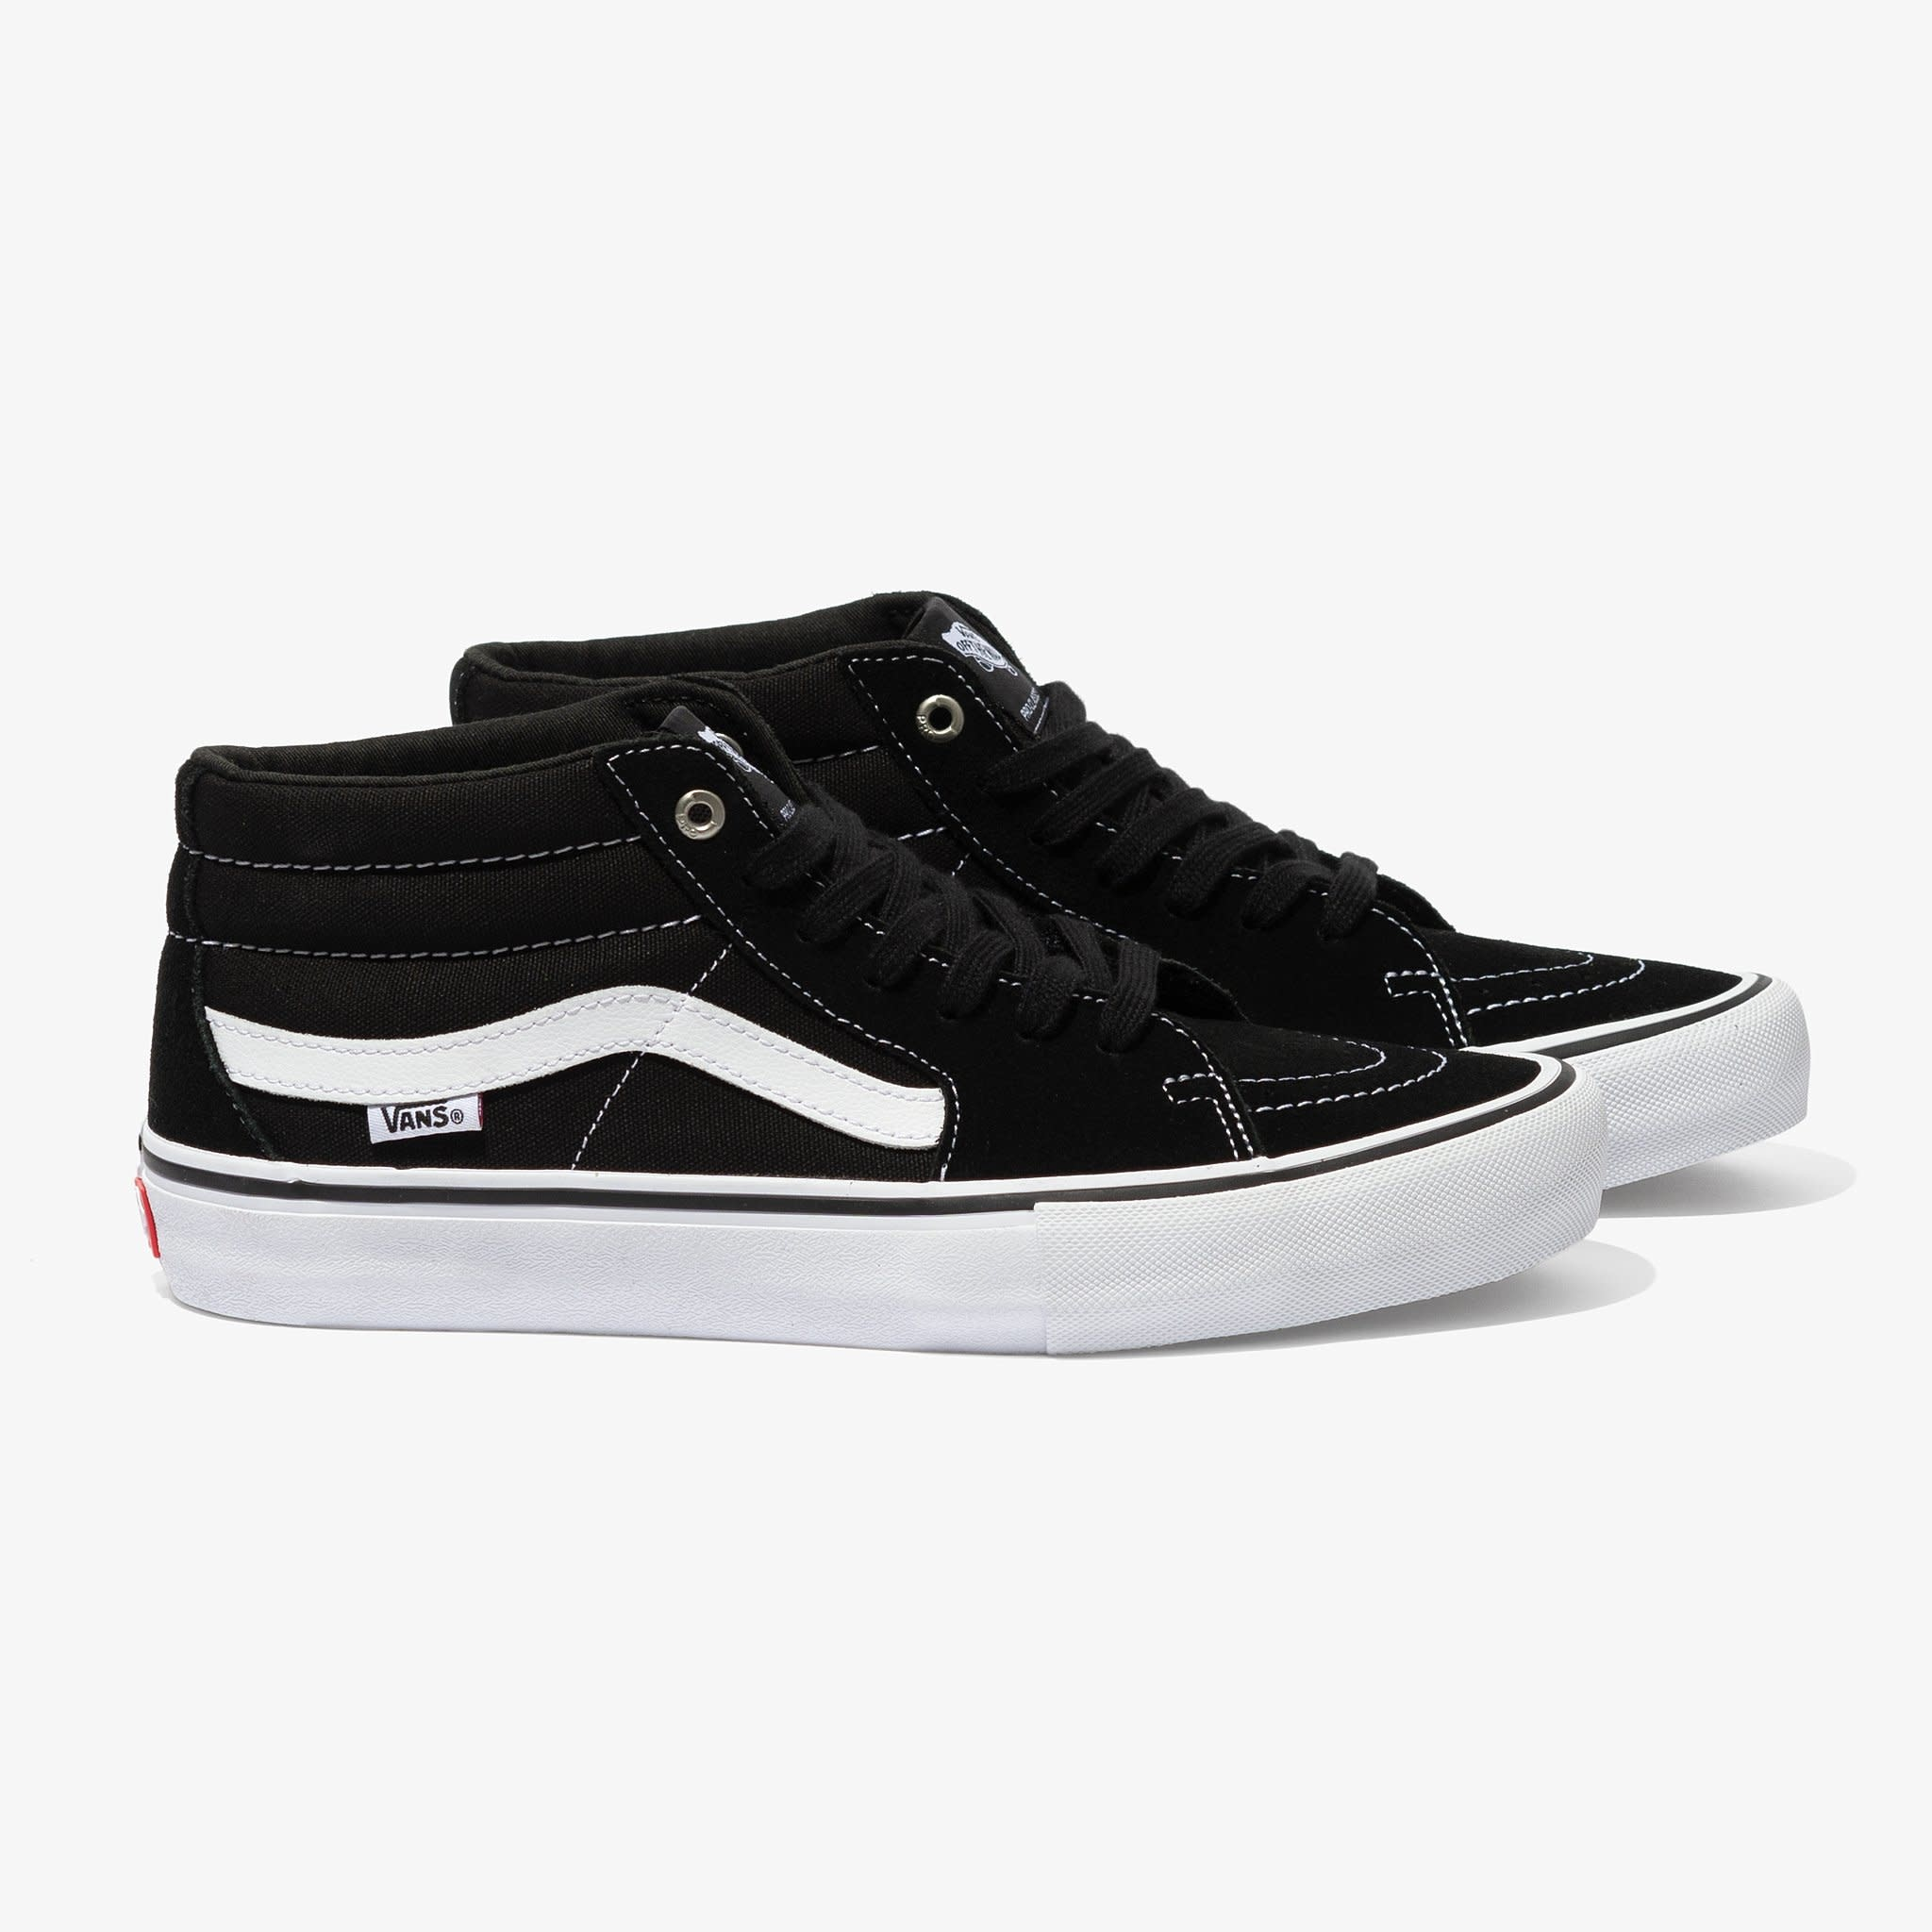 Vans Shoes Sk8 Mid Pro Black/White